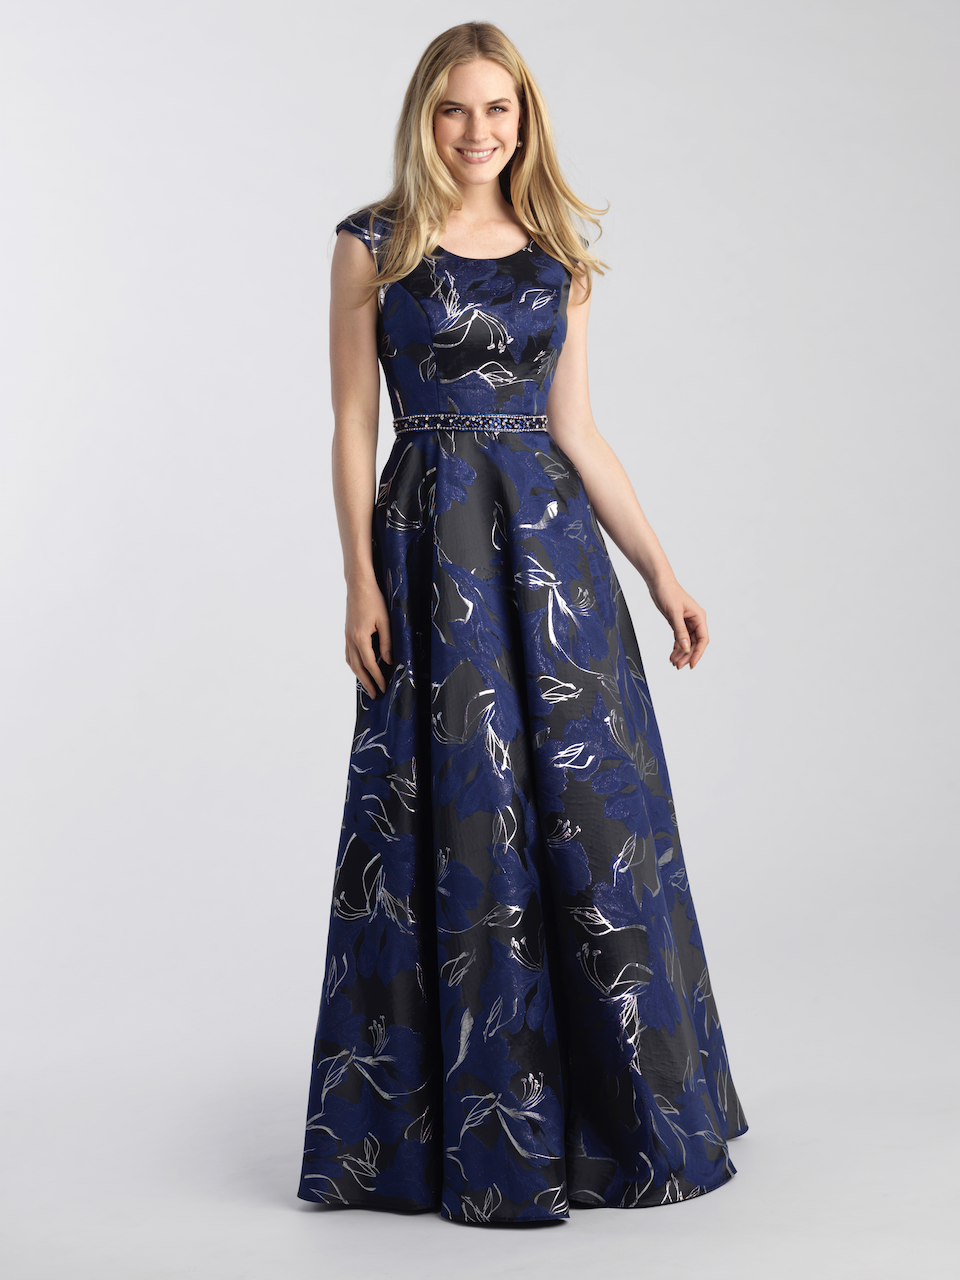 MJ 20-501 black navy modest prom dress with sleeves for plus size LDS formal gown